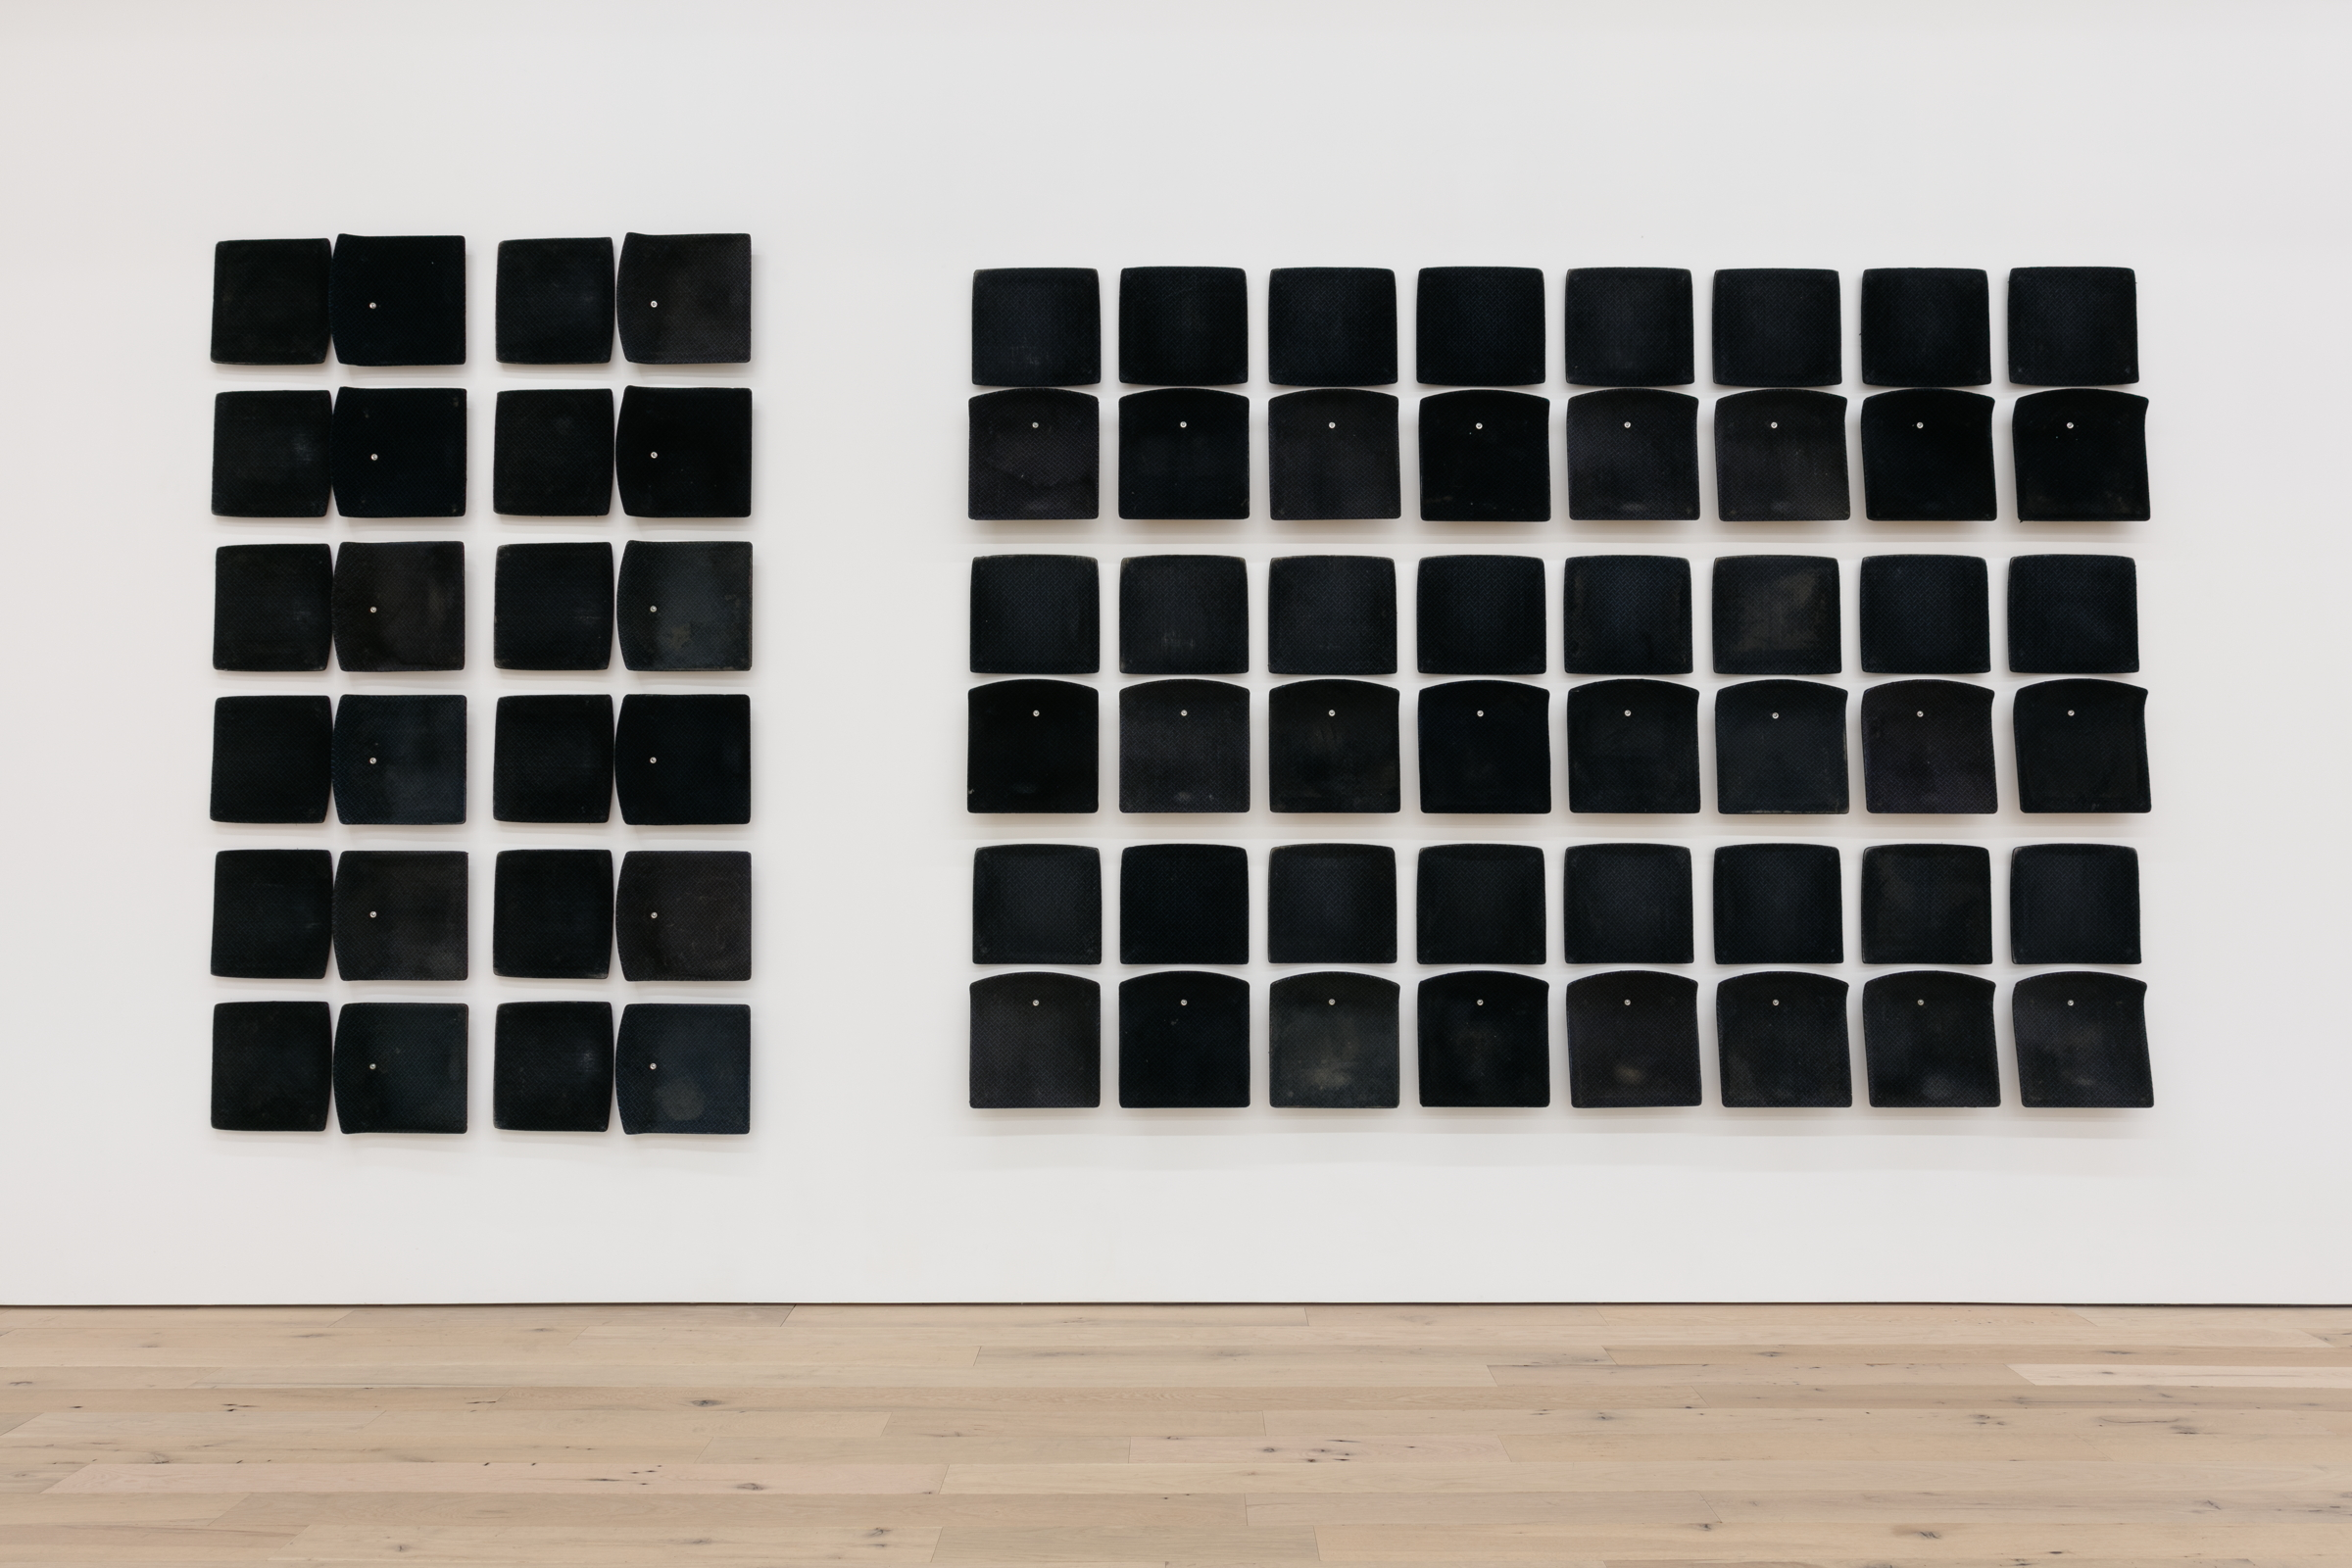 Jessica Vaughn, After Willis (rubbed, used and moved) #005, 2016, 36 individual pairs of used machine fabricated public transit train seats (Chicago Transit Authority 1998-2011), 98 x 225 x ¼ in.